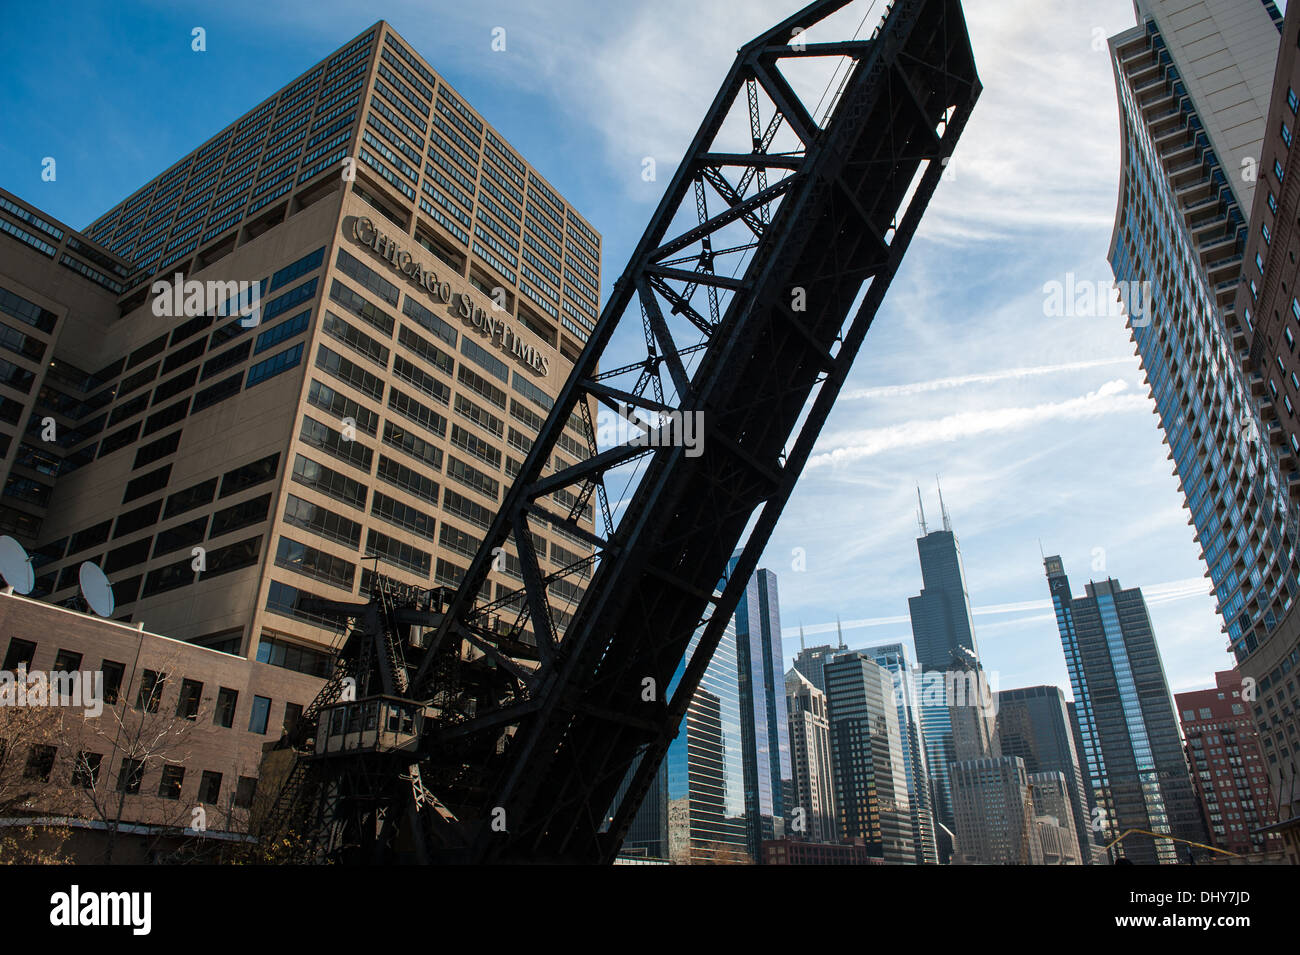 CHICAGO, IL - NOVEMBER 13: View of the Chicago & Northwestern Railway Bridge in front of the Chicago skyline in Chicago. - Stock Image